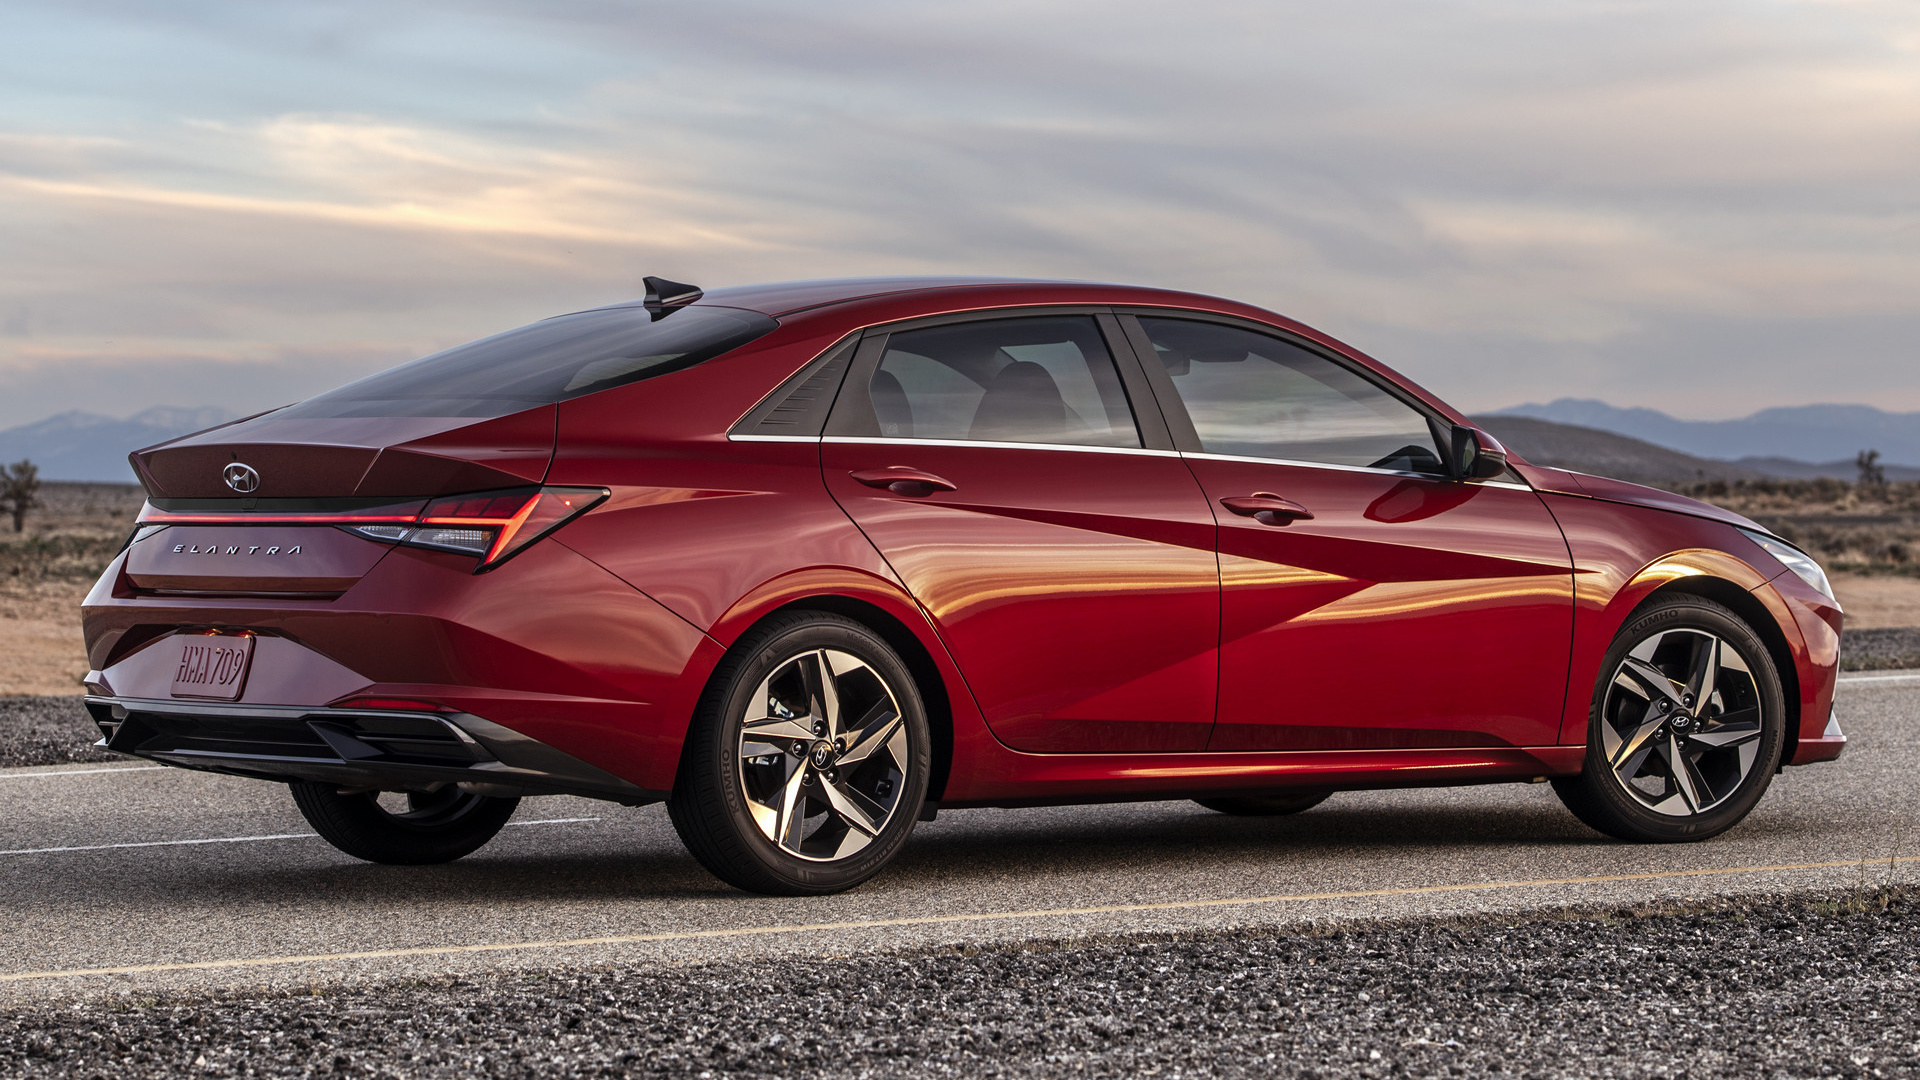 2021 hyundai elantra  wallpapers and hd images  car pixel